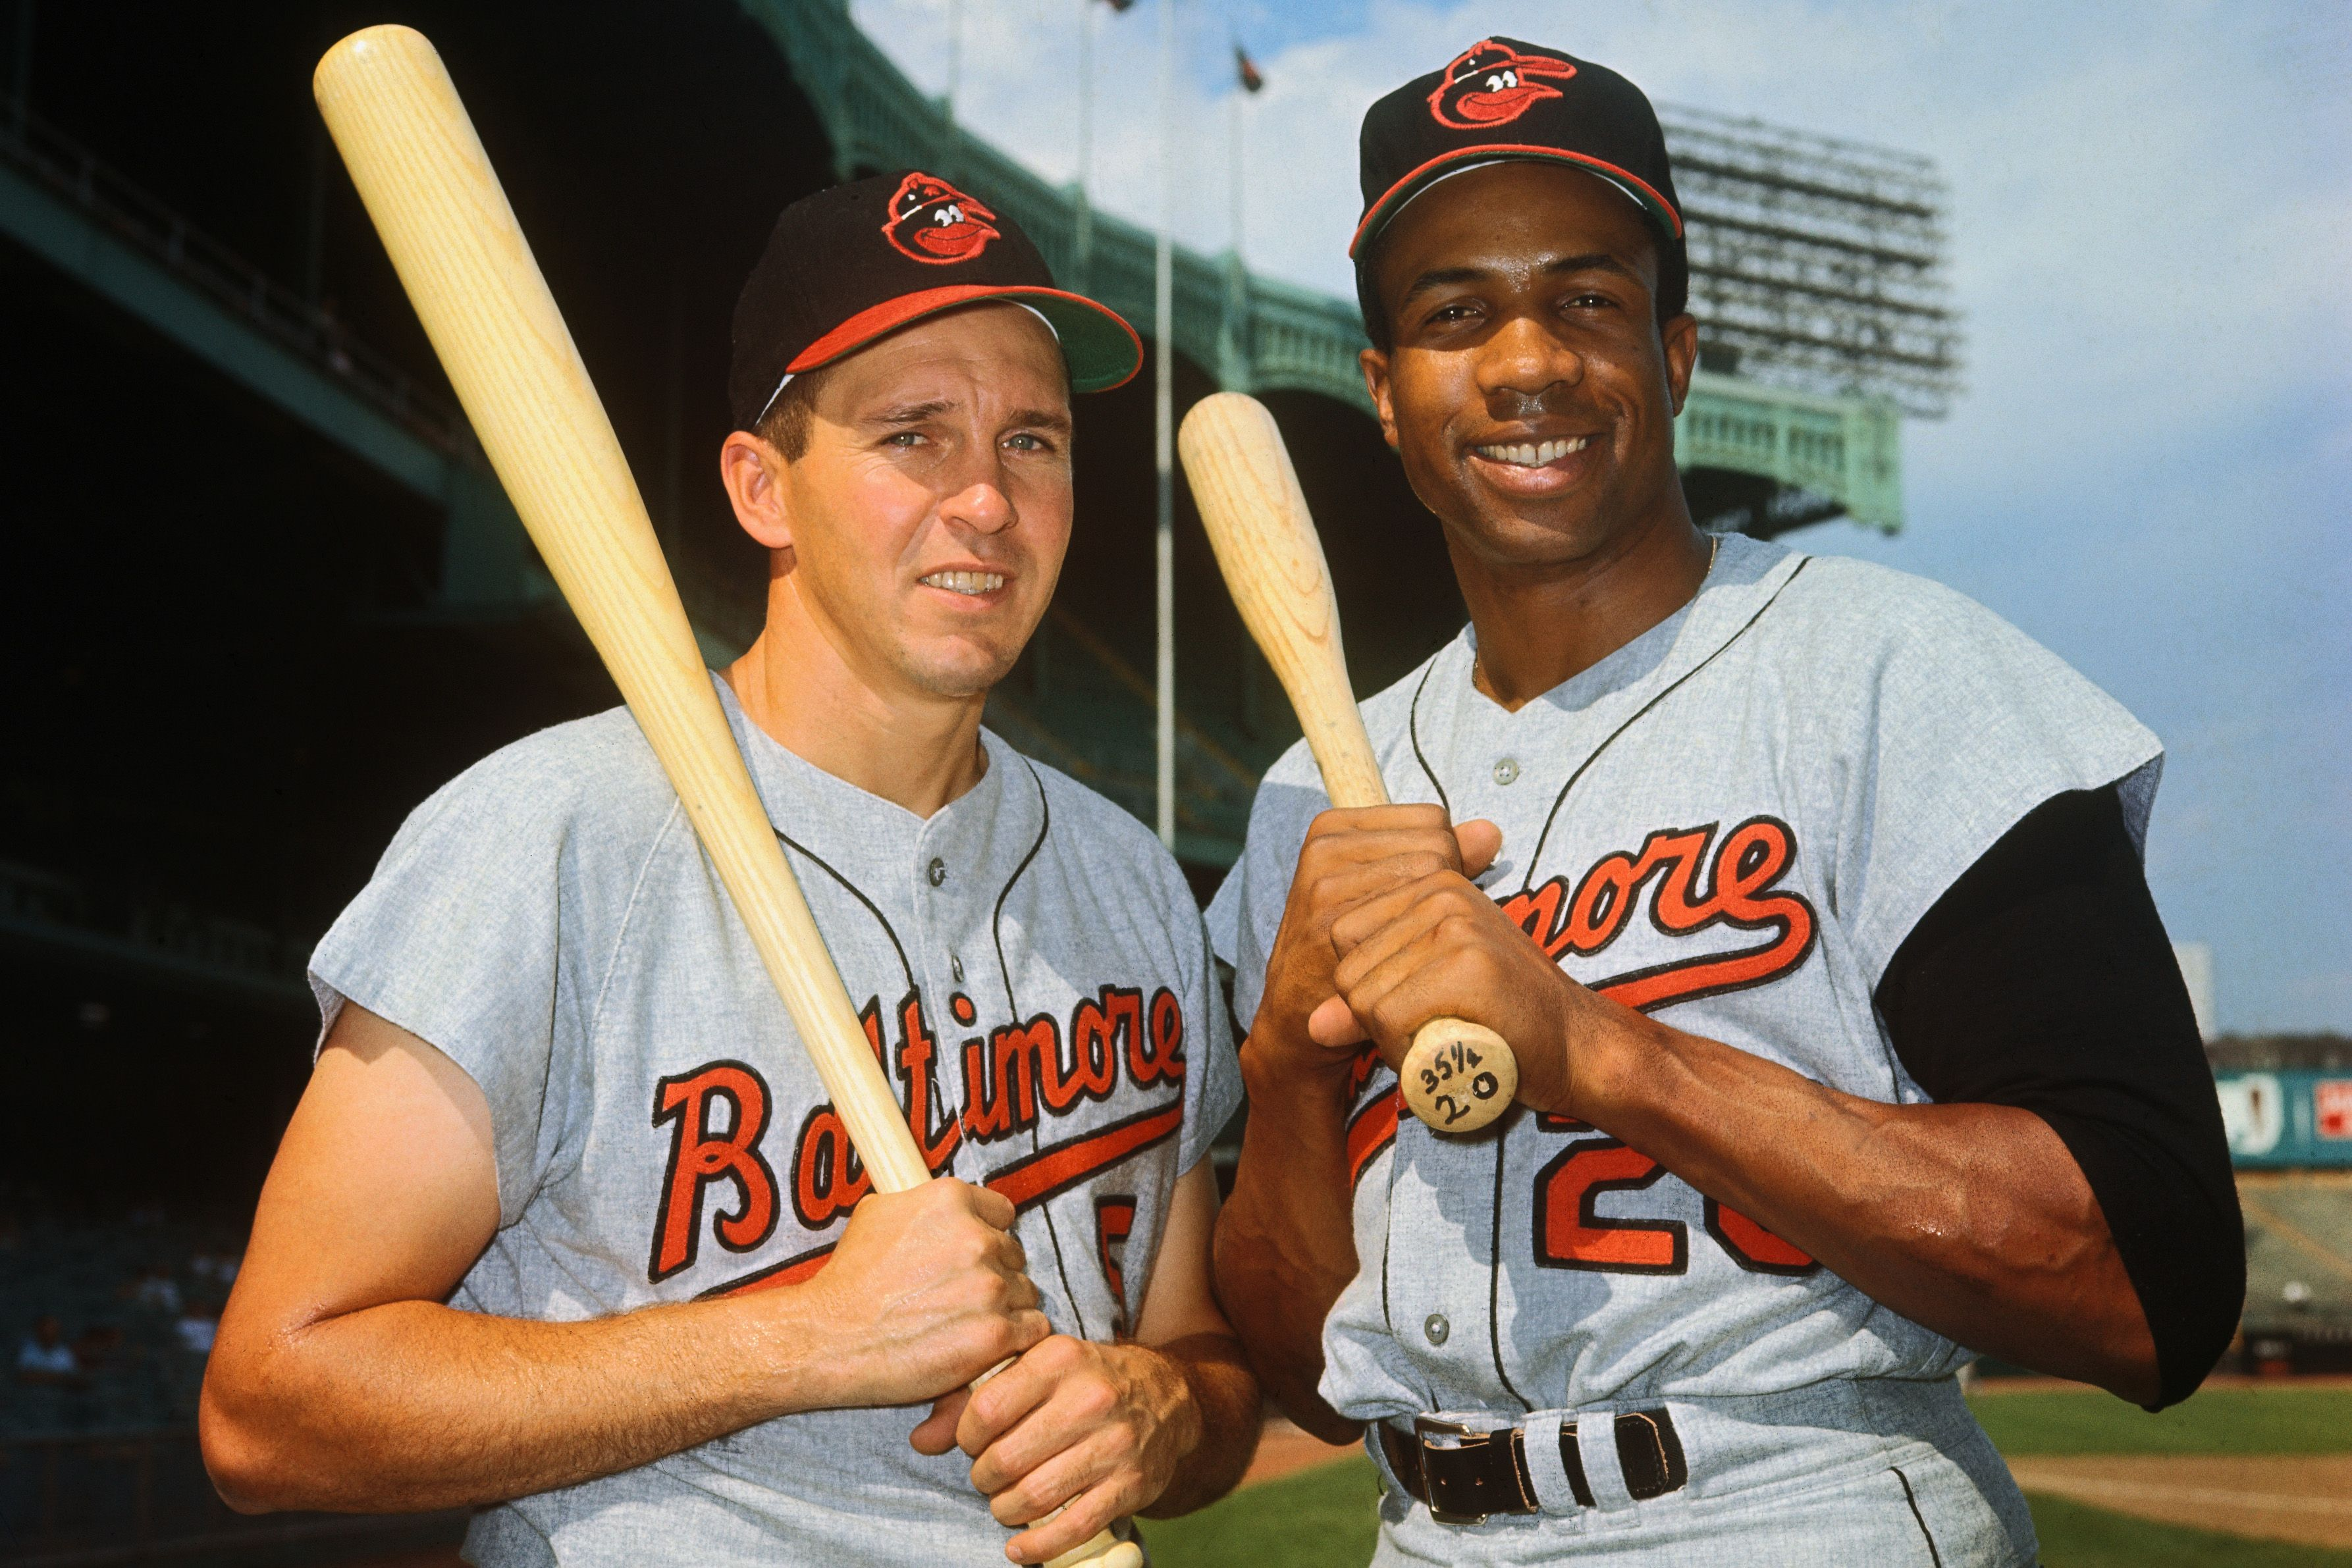 1966-baltimore-orioles-gettyimages-51549